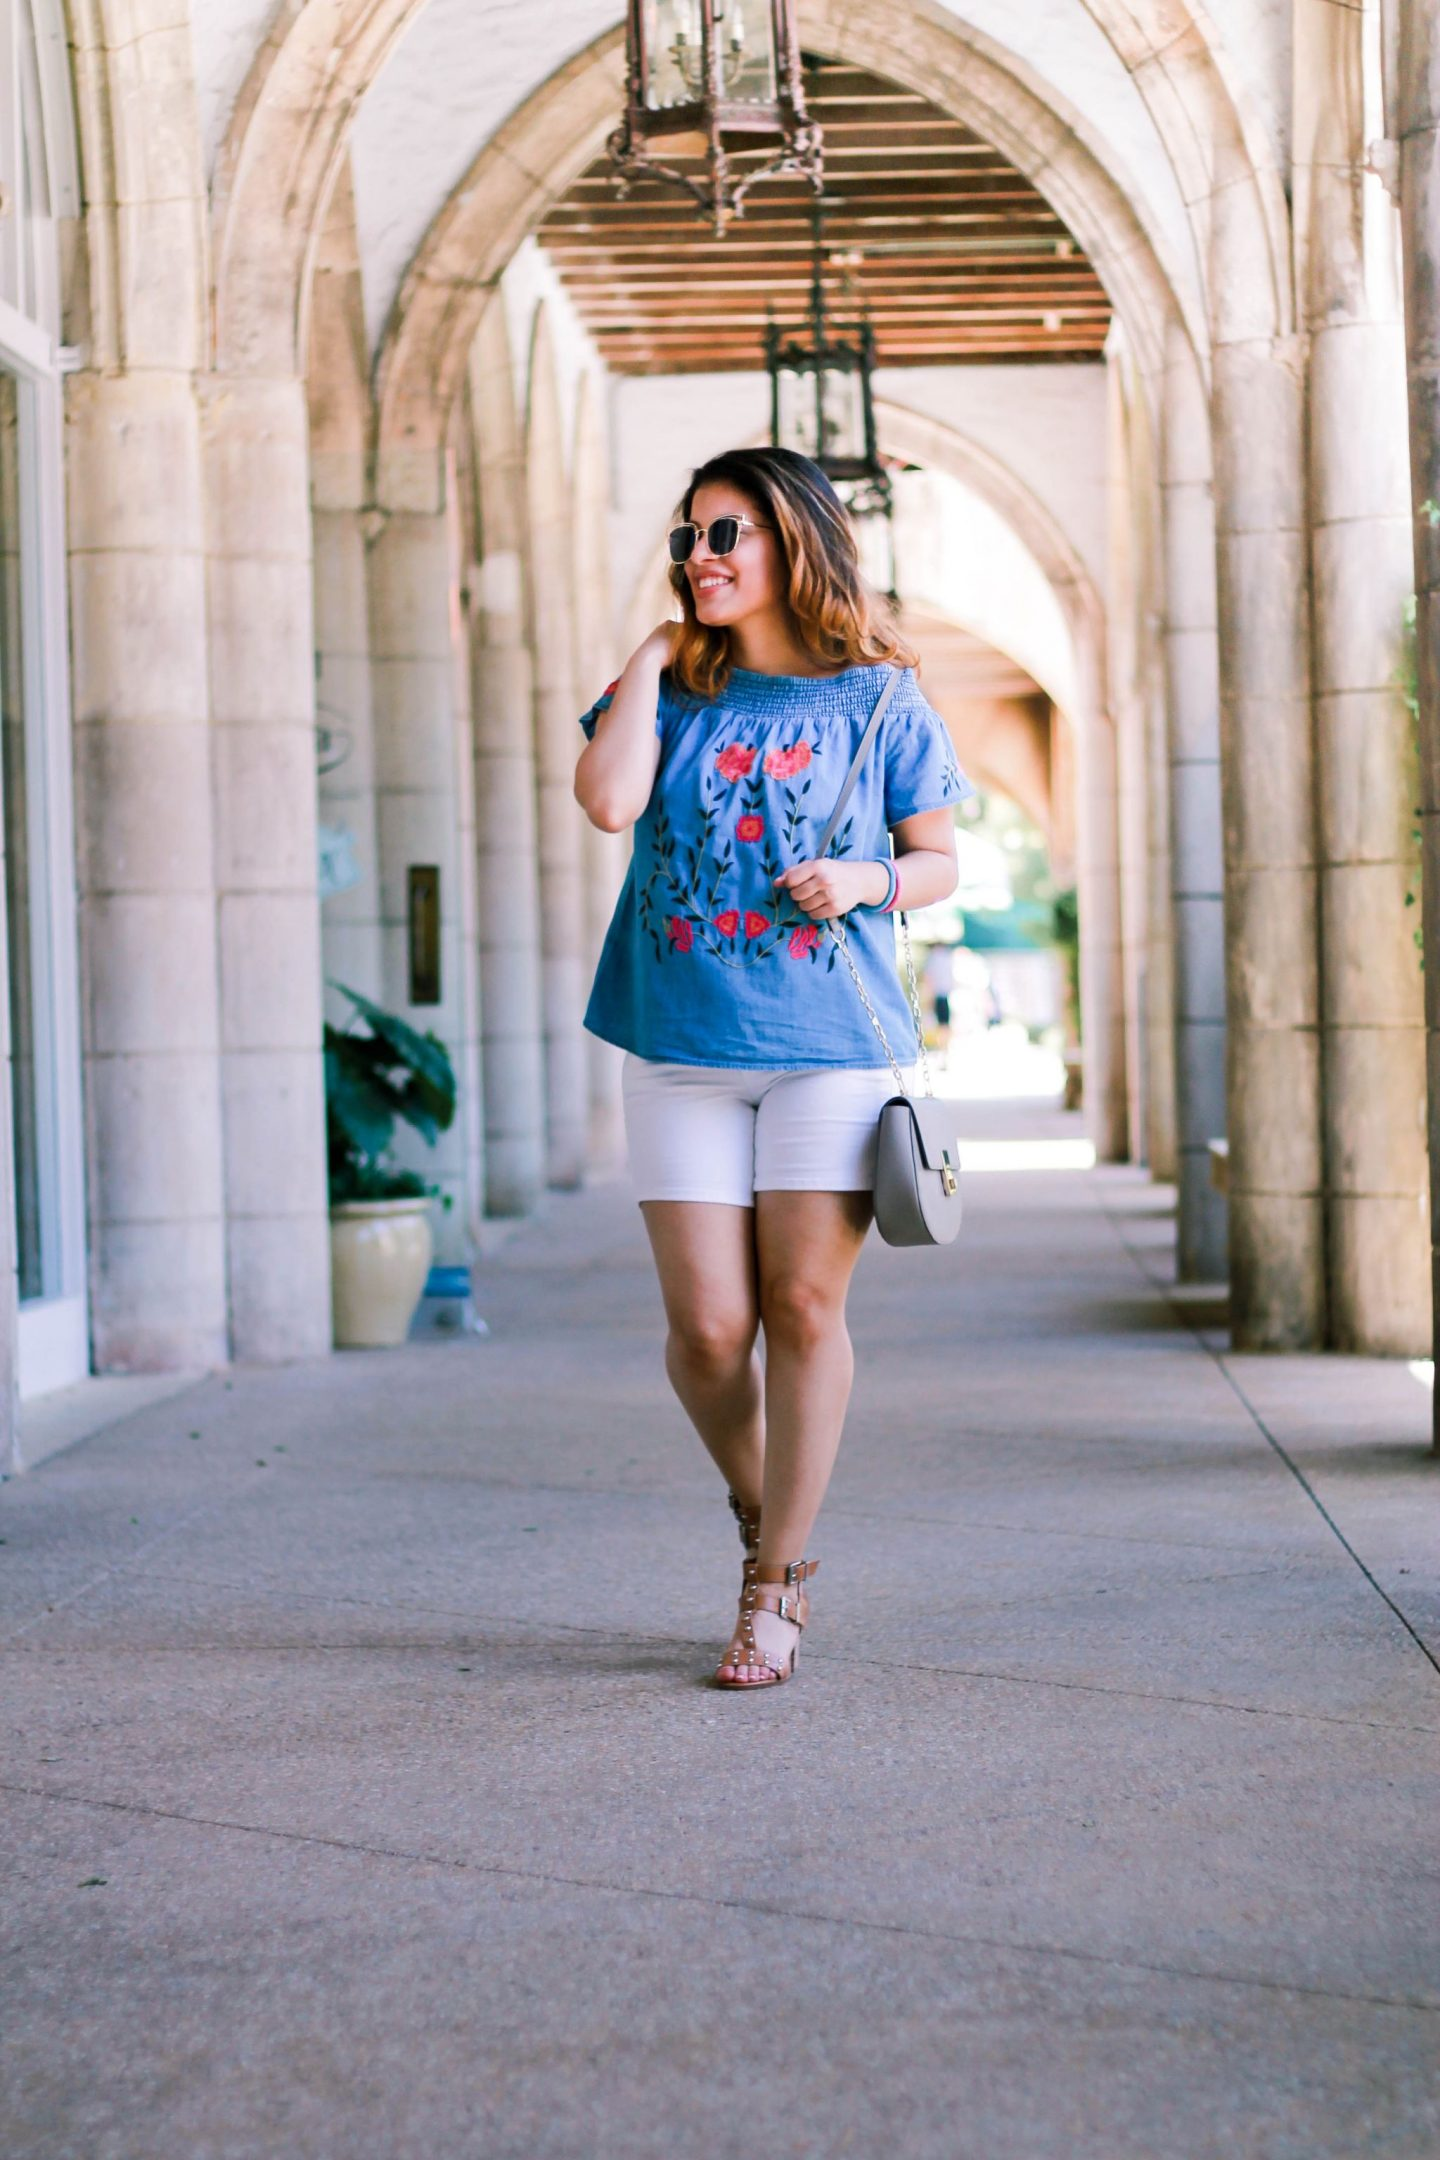 off the shoulder top, off the shoulder, ots, shorts, jeans, worth ave, worth, florida, palm beach, palm. europe, lace up sandals, heels, summer, chic, style, blogger, personal style blogger, travel, adidas superstar sneakers, sneakers, adidas, superstar, sunglasses, nordstrom